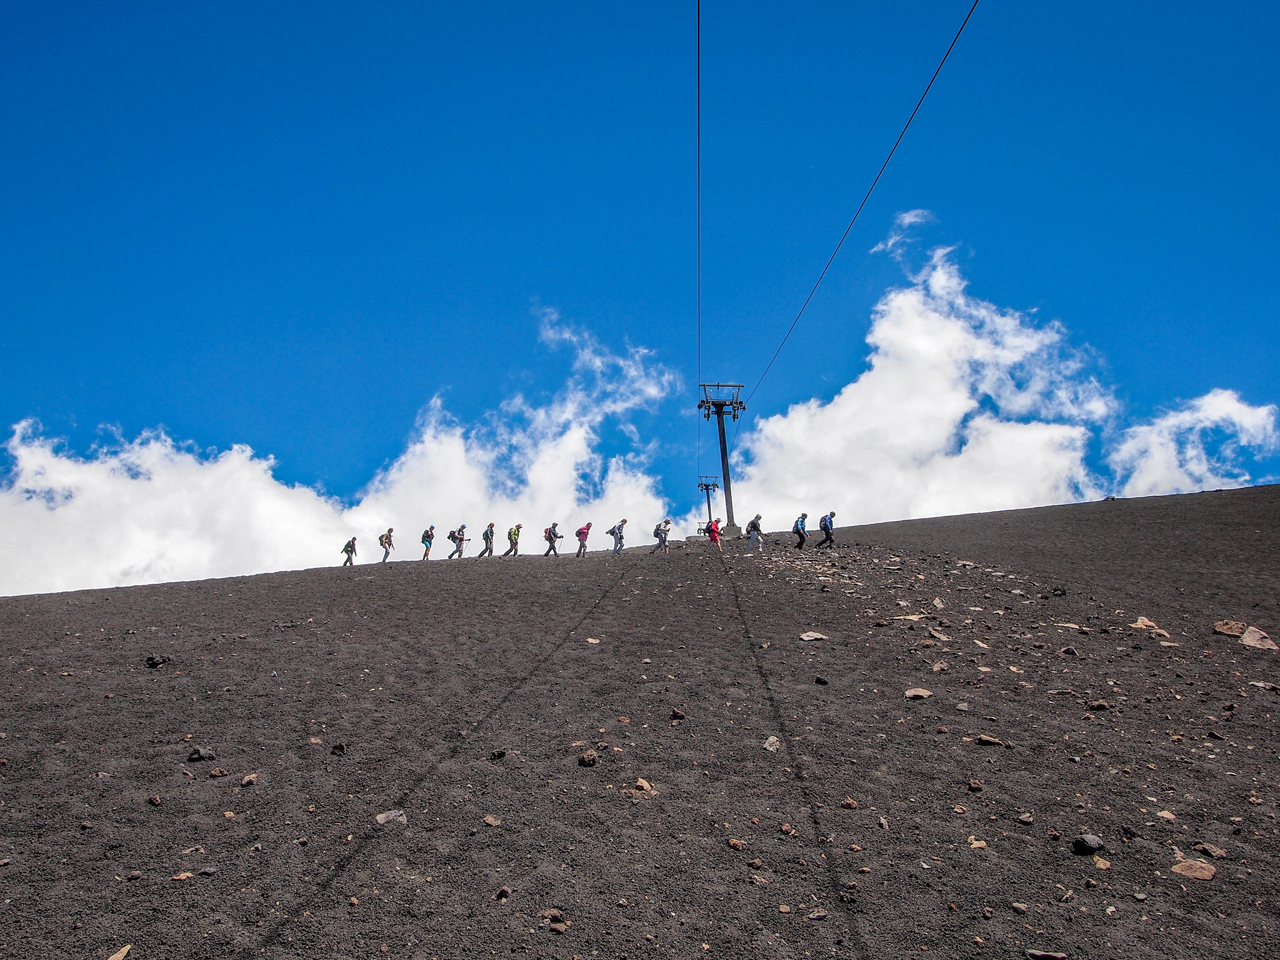 Trekking on Mount Etna